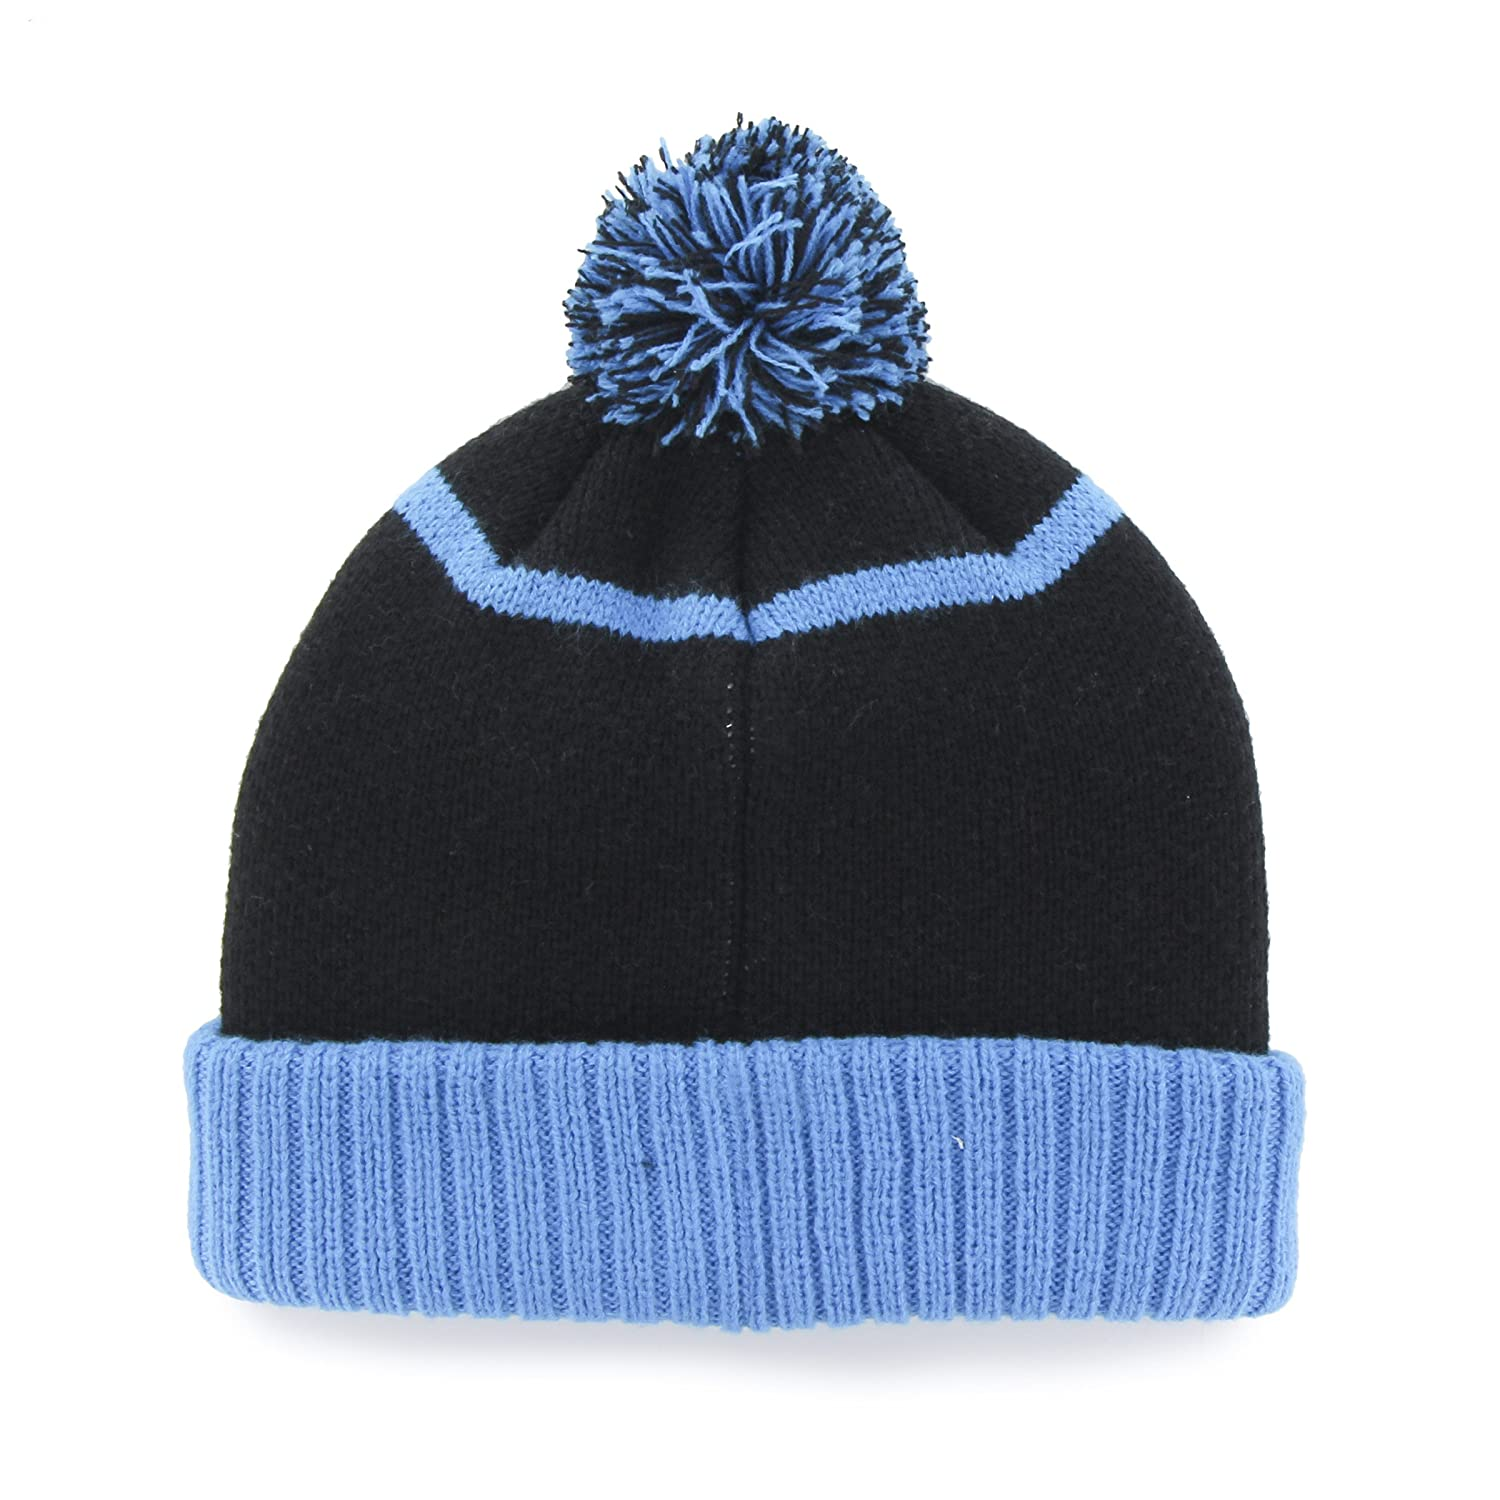 Carolina panthers linesman cuff knit beanie with pom one size black sports  outdoors jpg 1500x1500 Lids 7b7e799b11d4